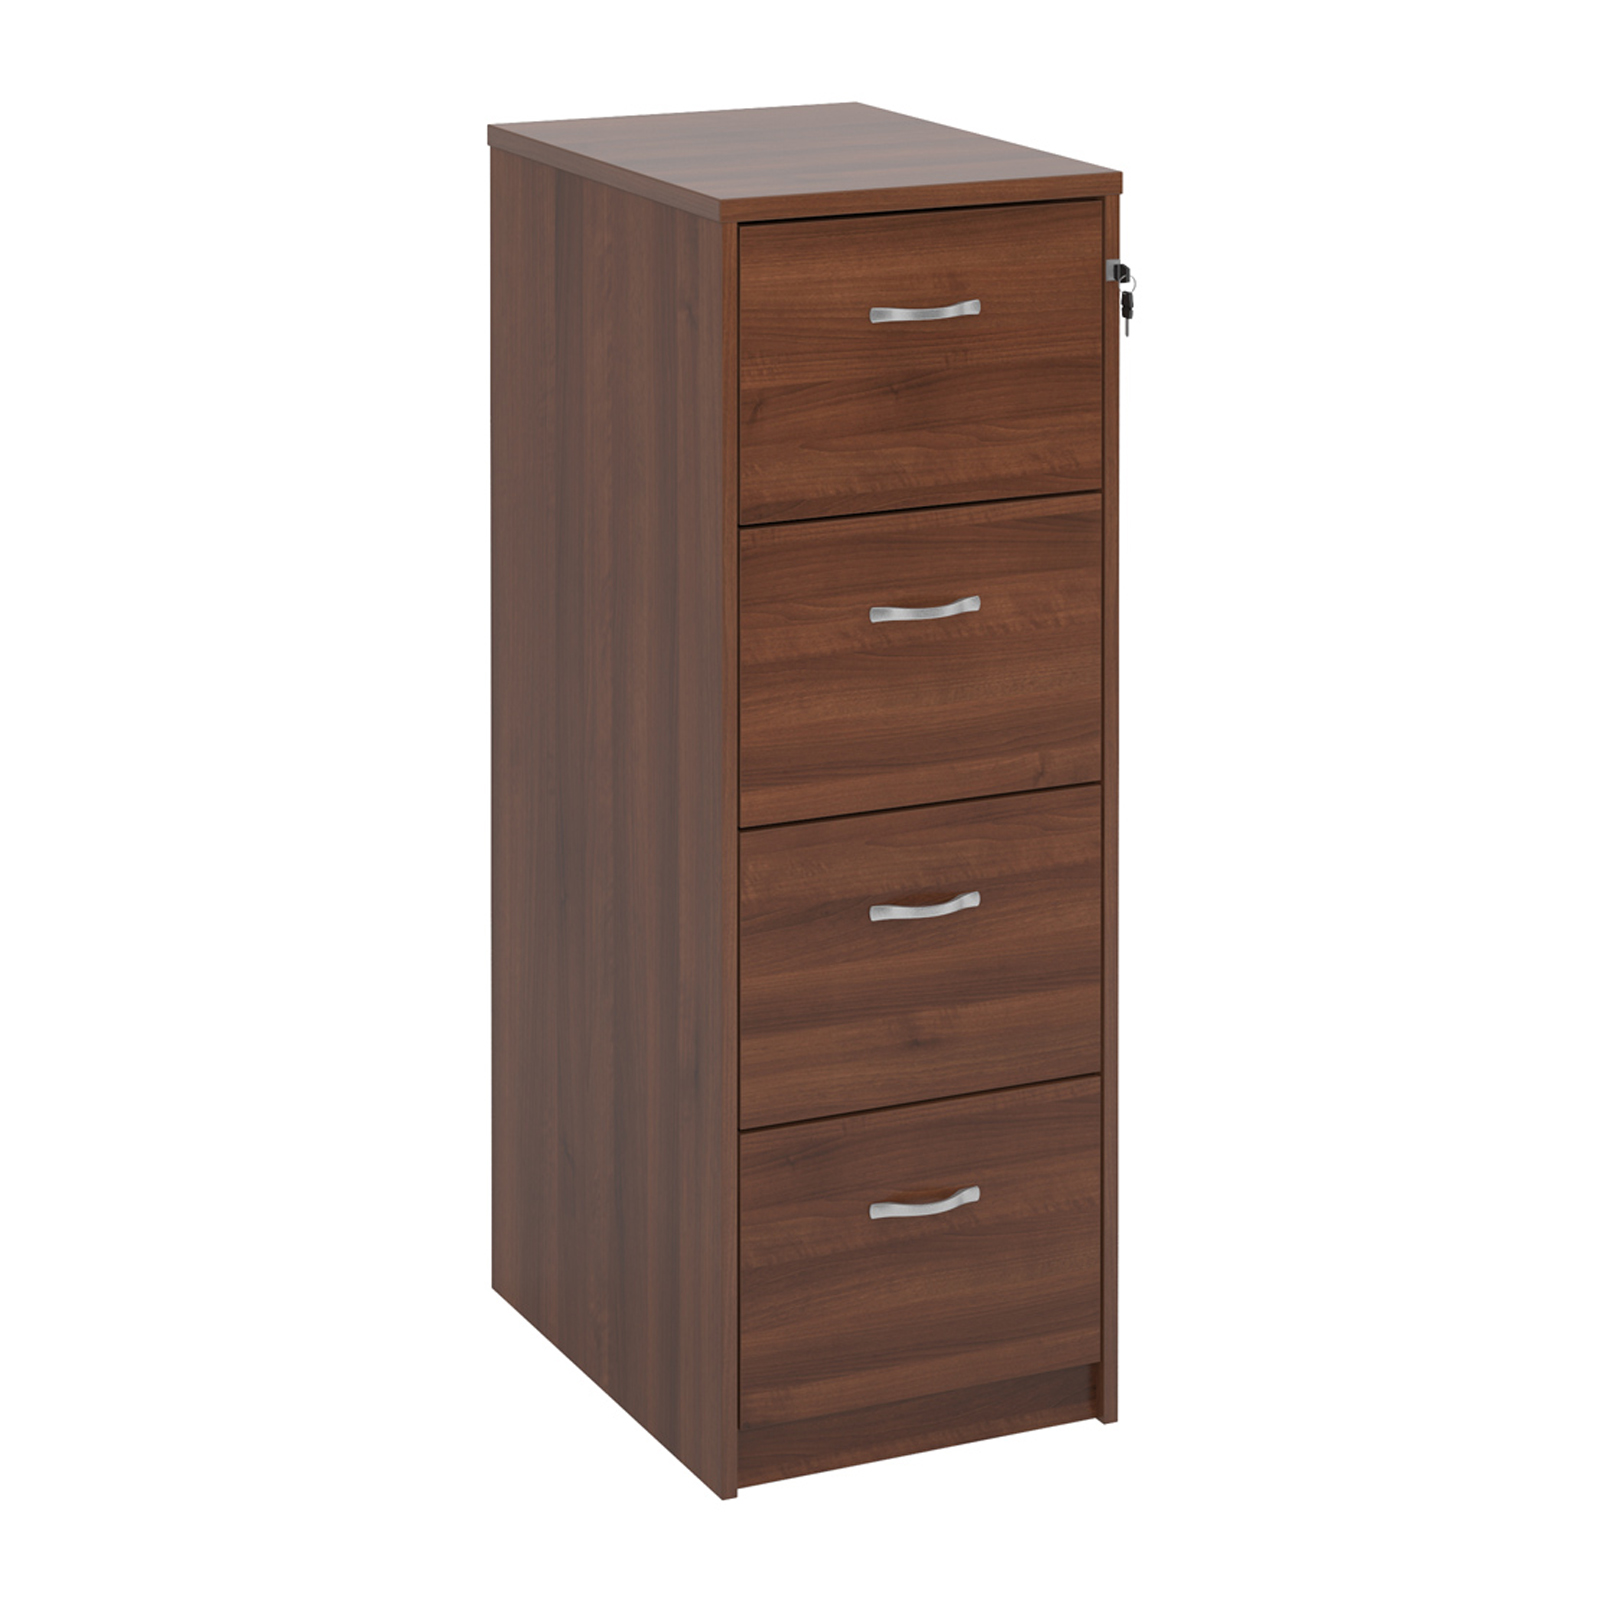 Wood Wooden 4 drawer filing cabinet with silver handles 1360mm high - walnut